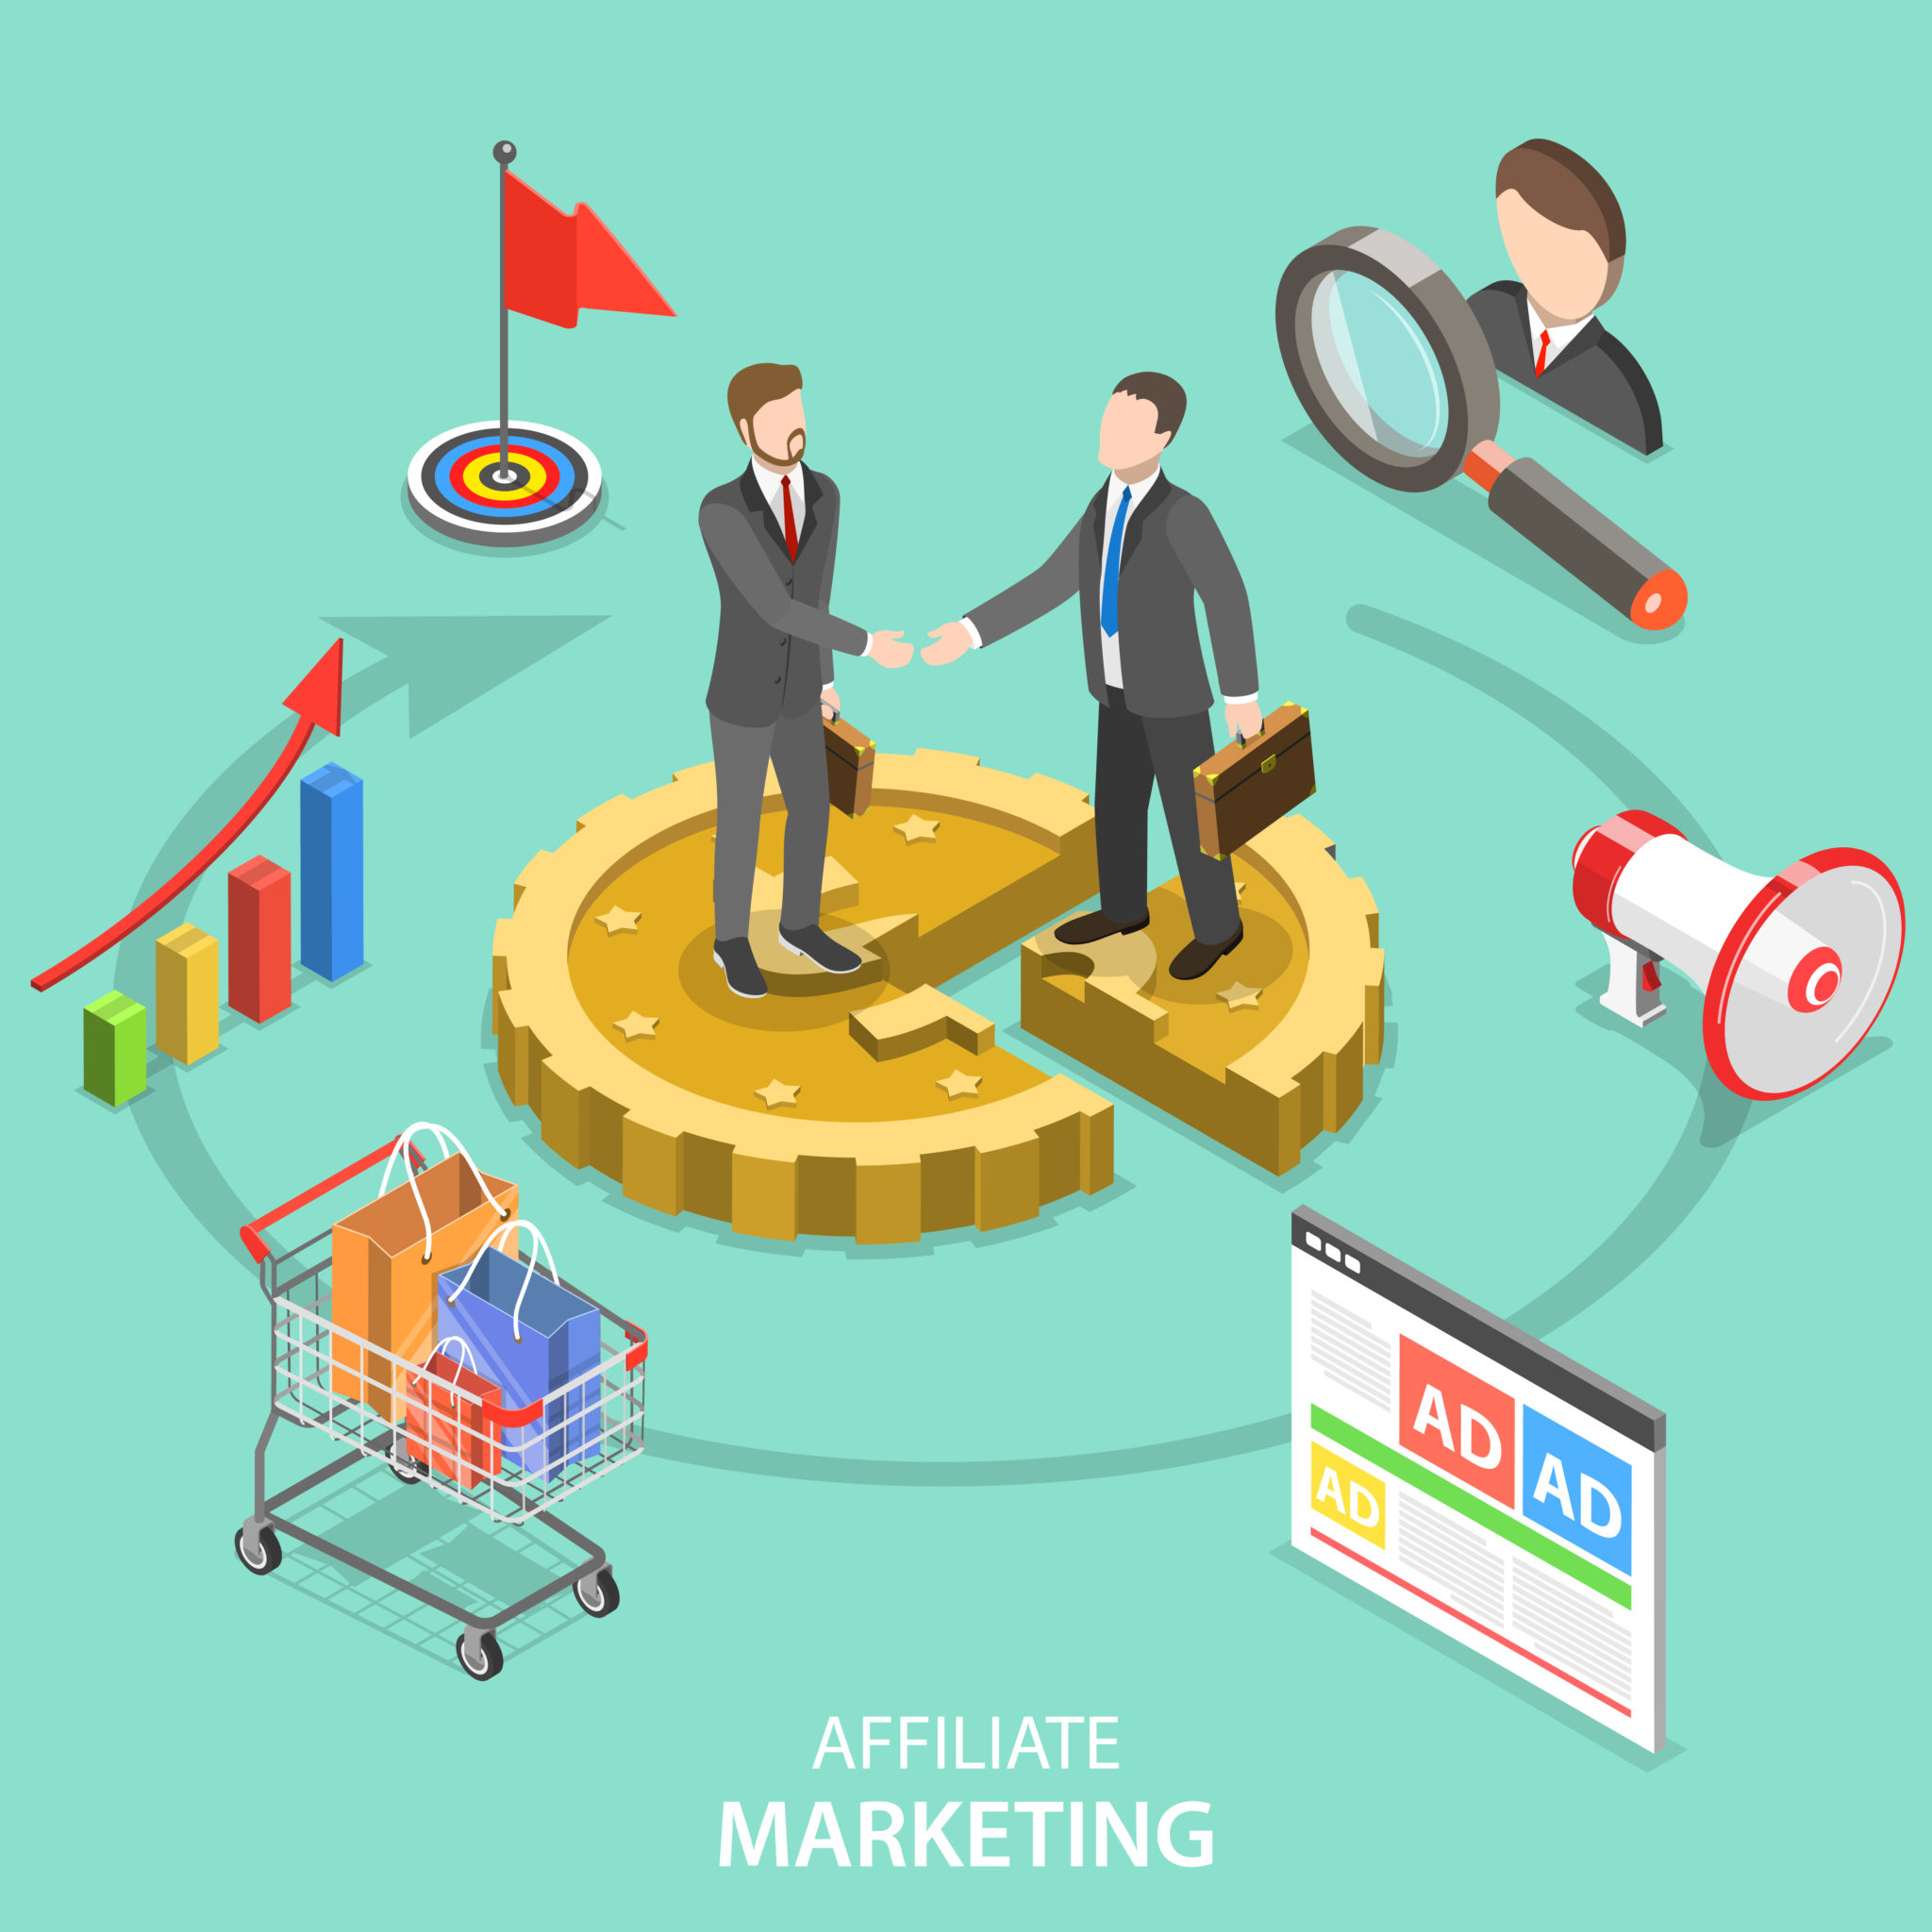 How Does Affiliate Marketing Work And Affiliate Programs Work?